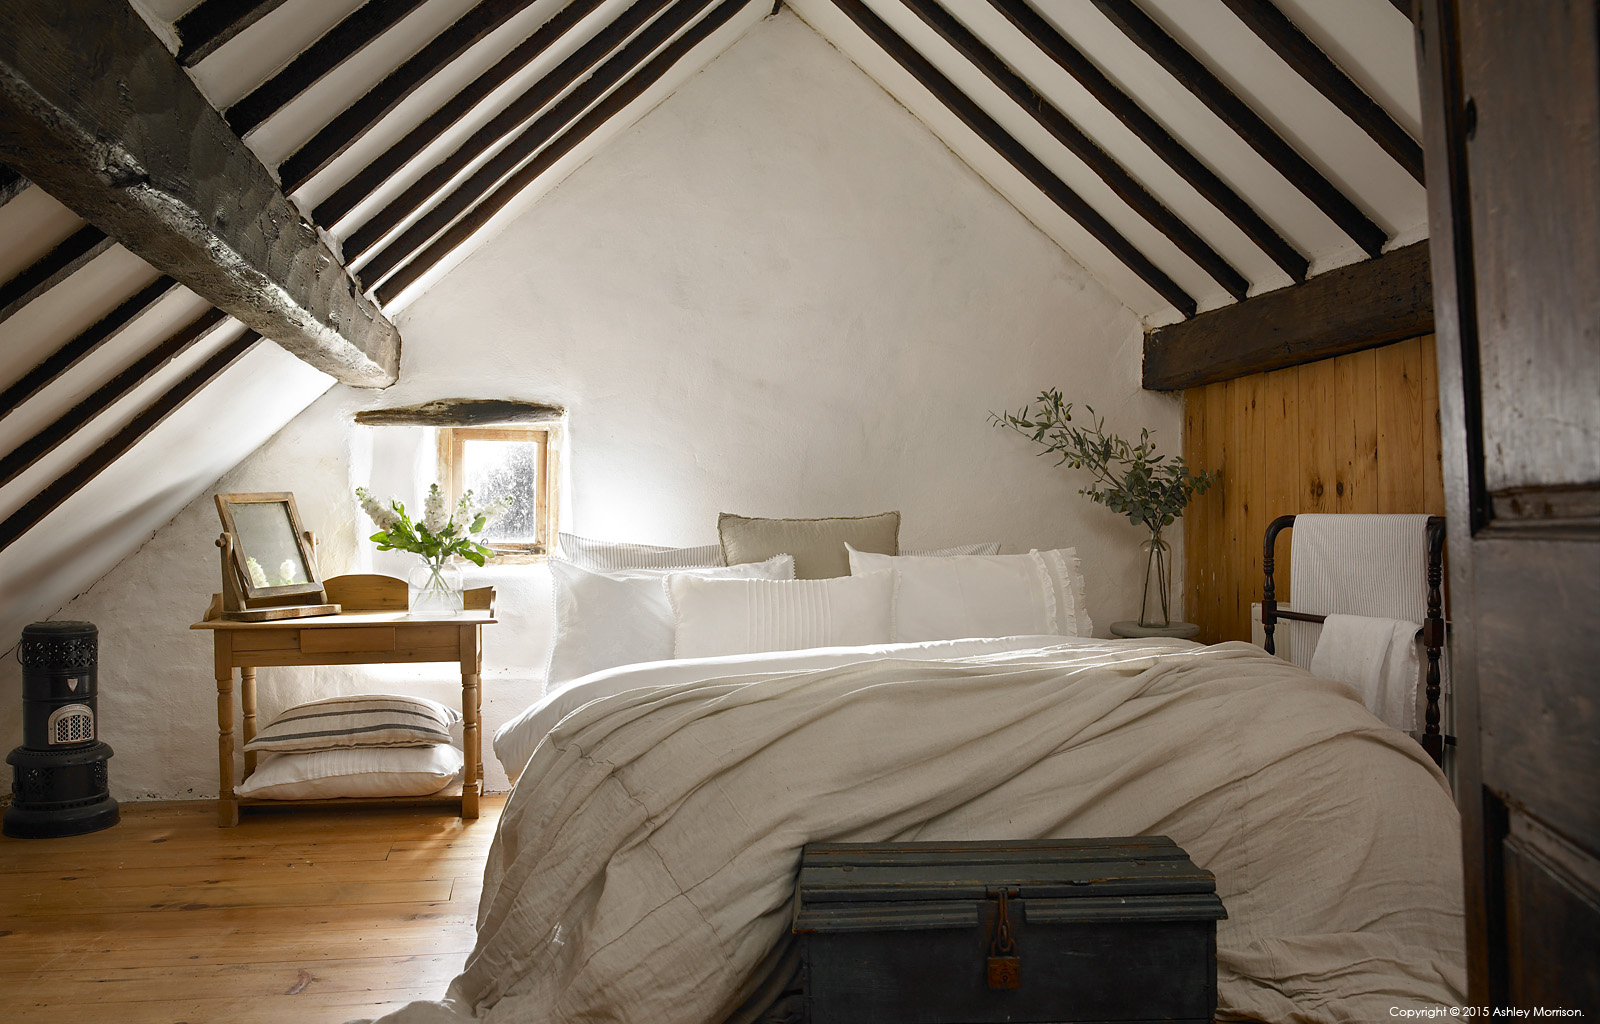 The master bedroom in Maggie and Robert Graham's 18th century Irish thatched cottage near the village of Kerrykeel in County Donegal.